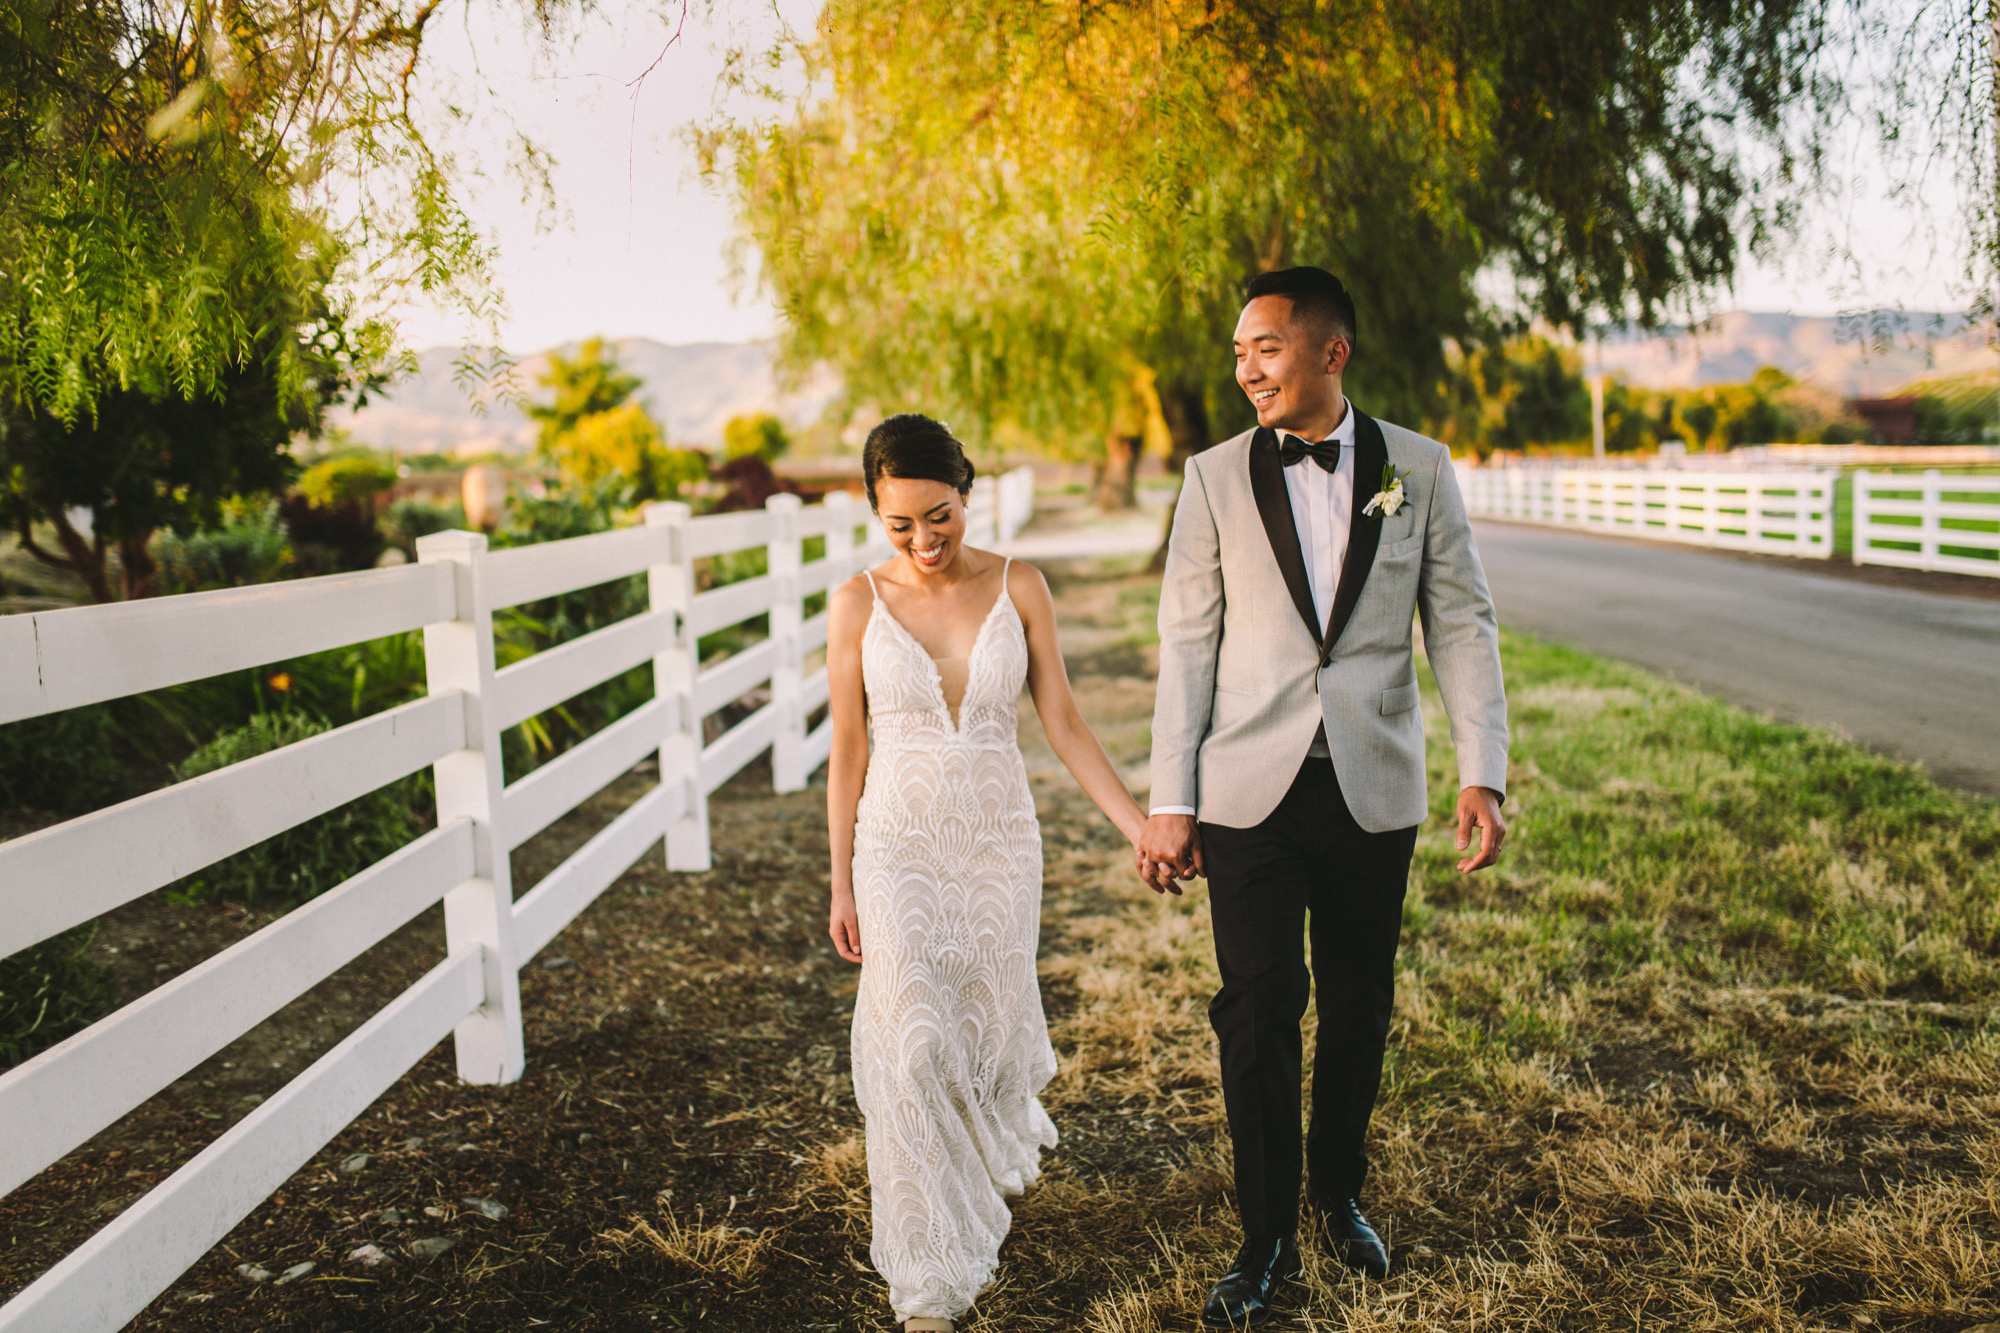 White Barn Wedding Arroyo Grande (1 of 2)-2.jpg